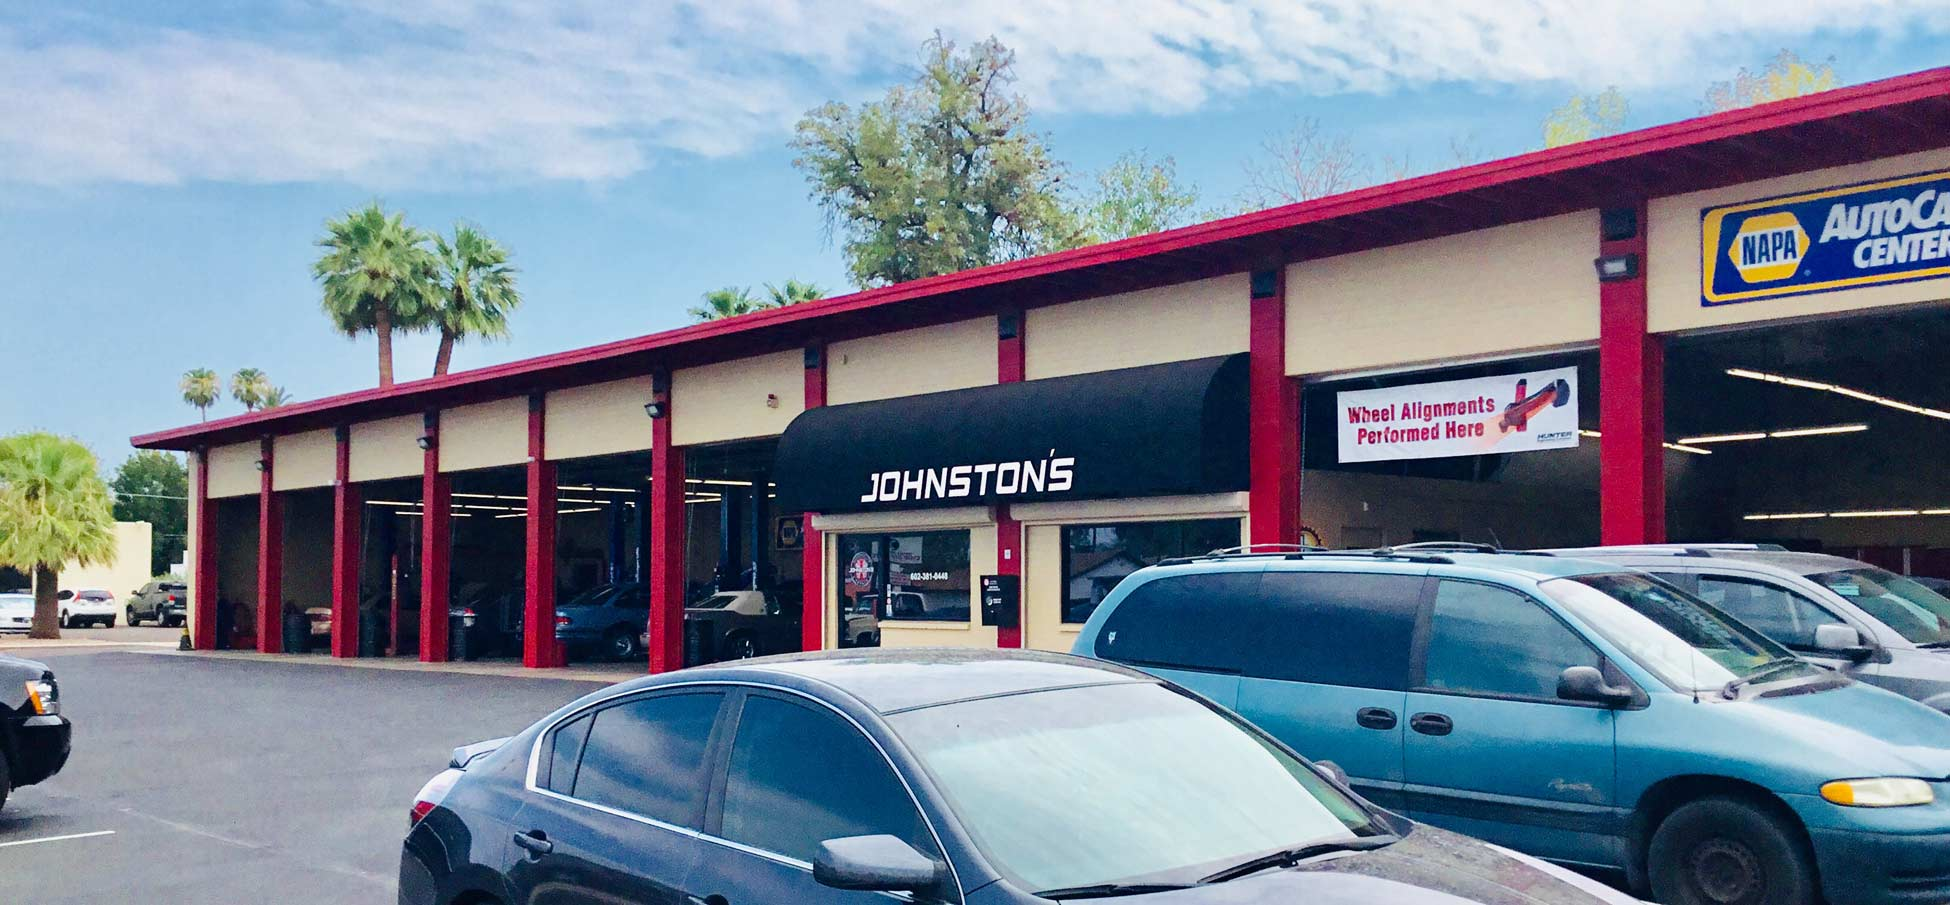 Front of Johnston's Automotive entrance and garage bays